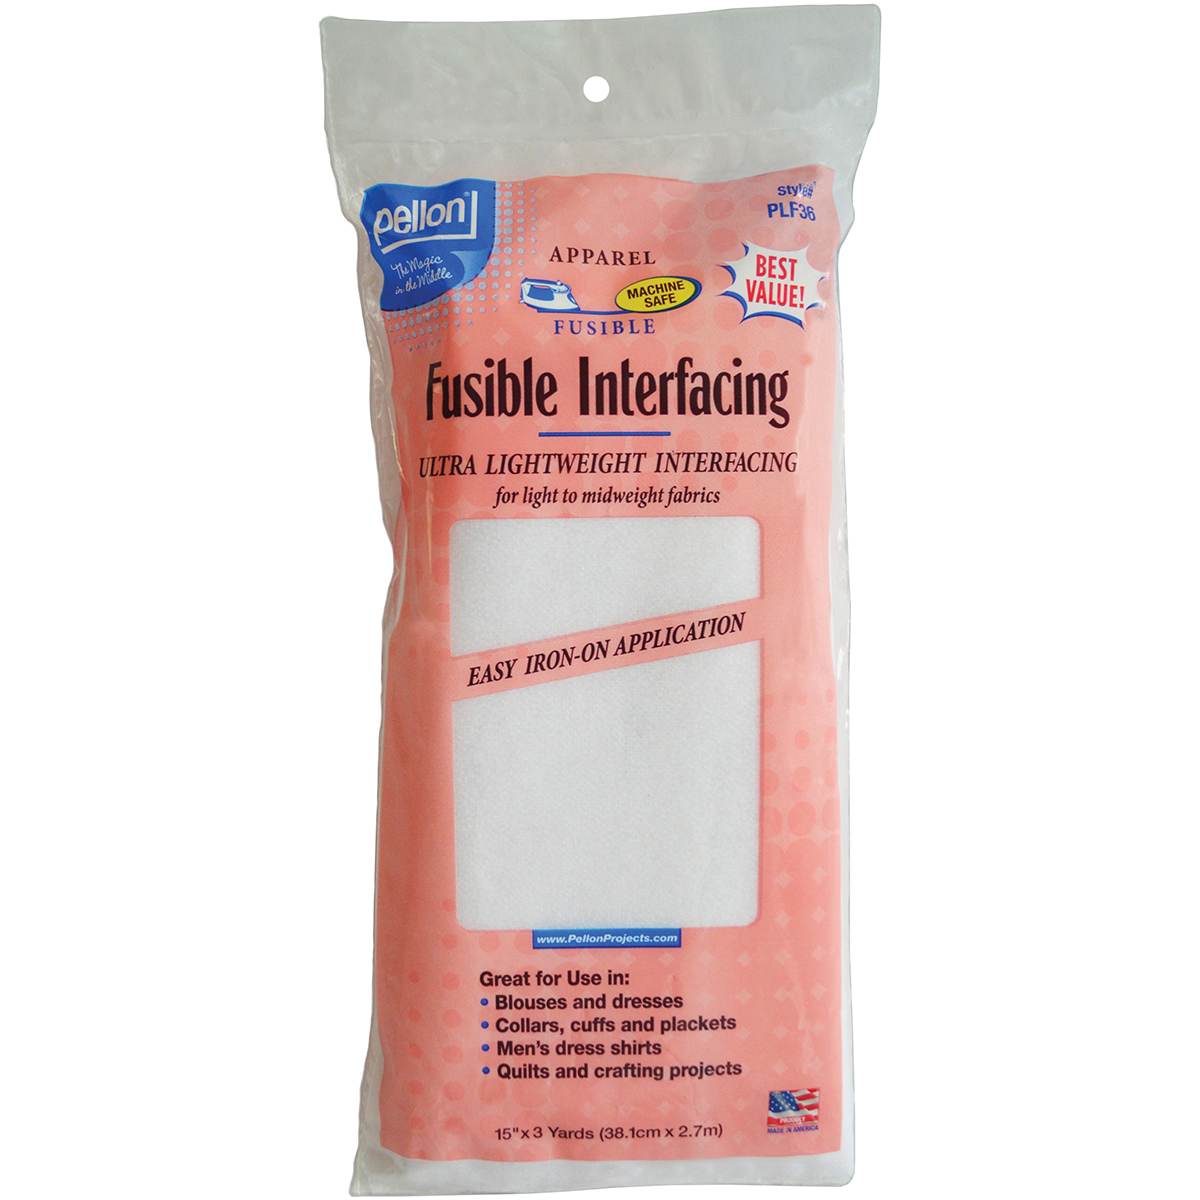 "Pellon PLF36 Fusible interfacing, White, 15"" x 3 Yards Packaged"